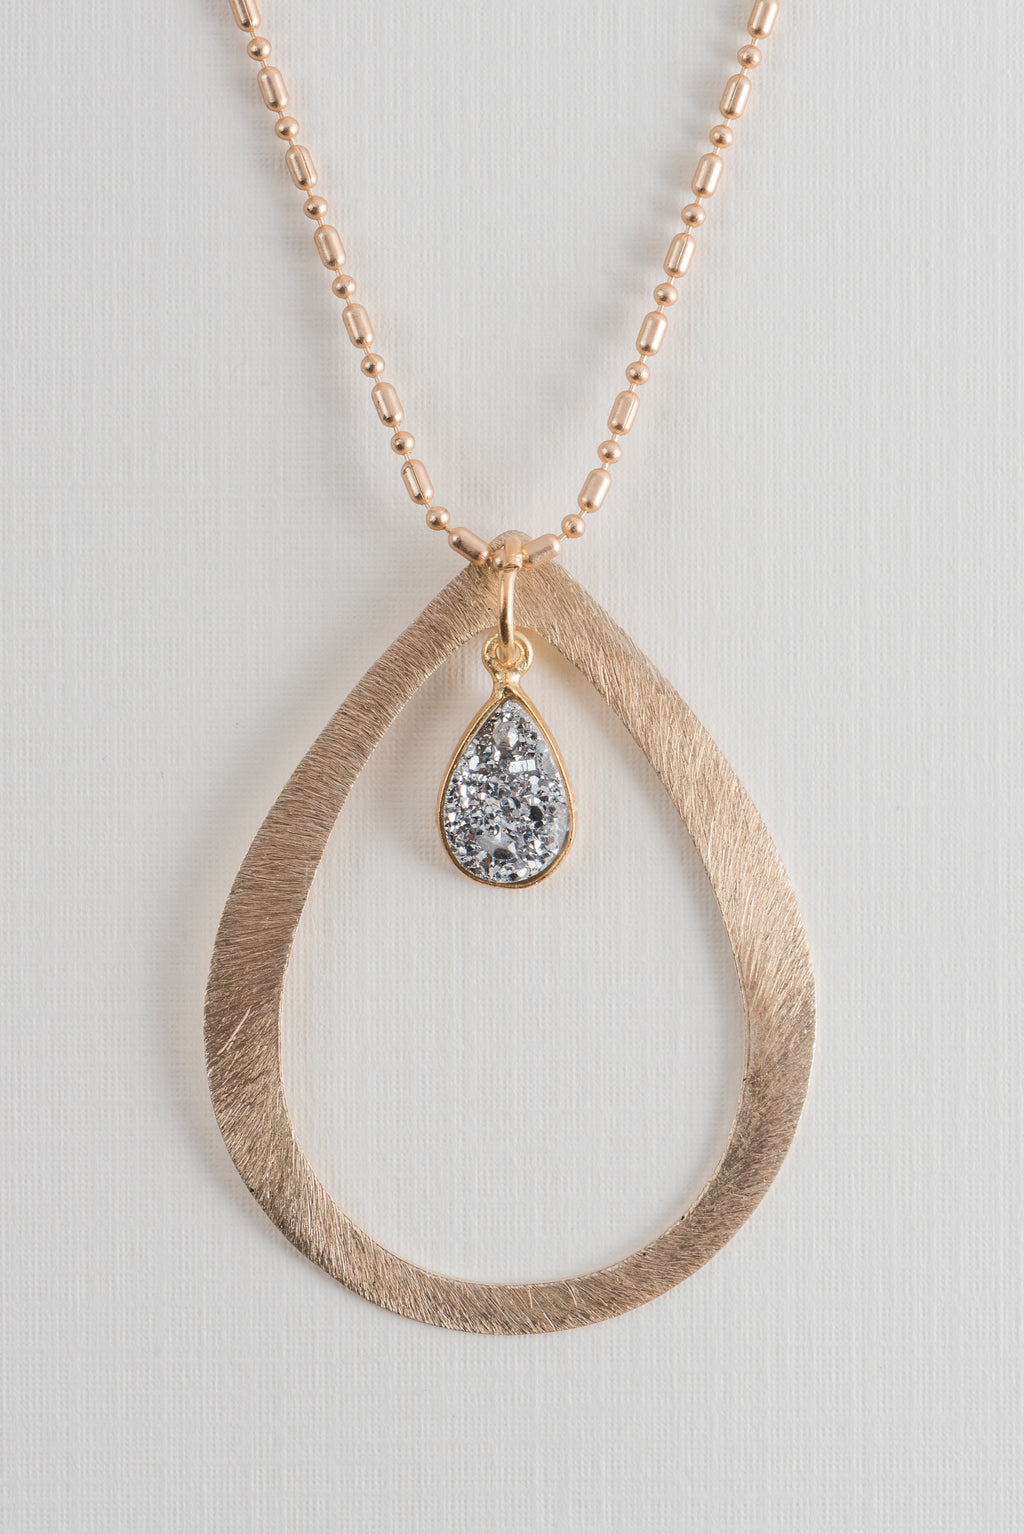 Brushed Gold Teardrop Druzy Necklace